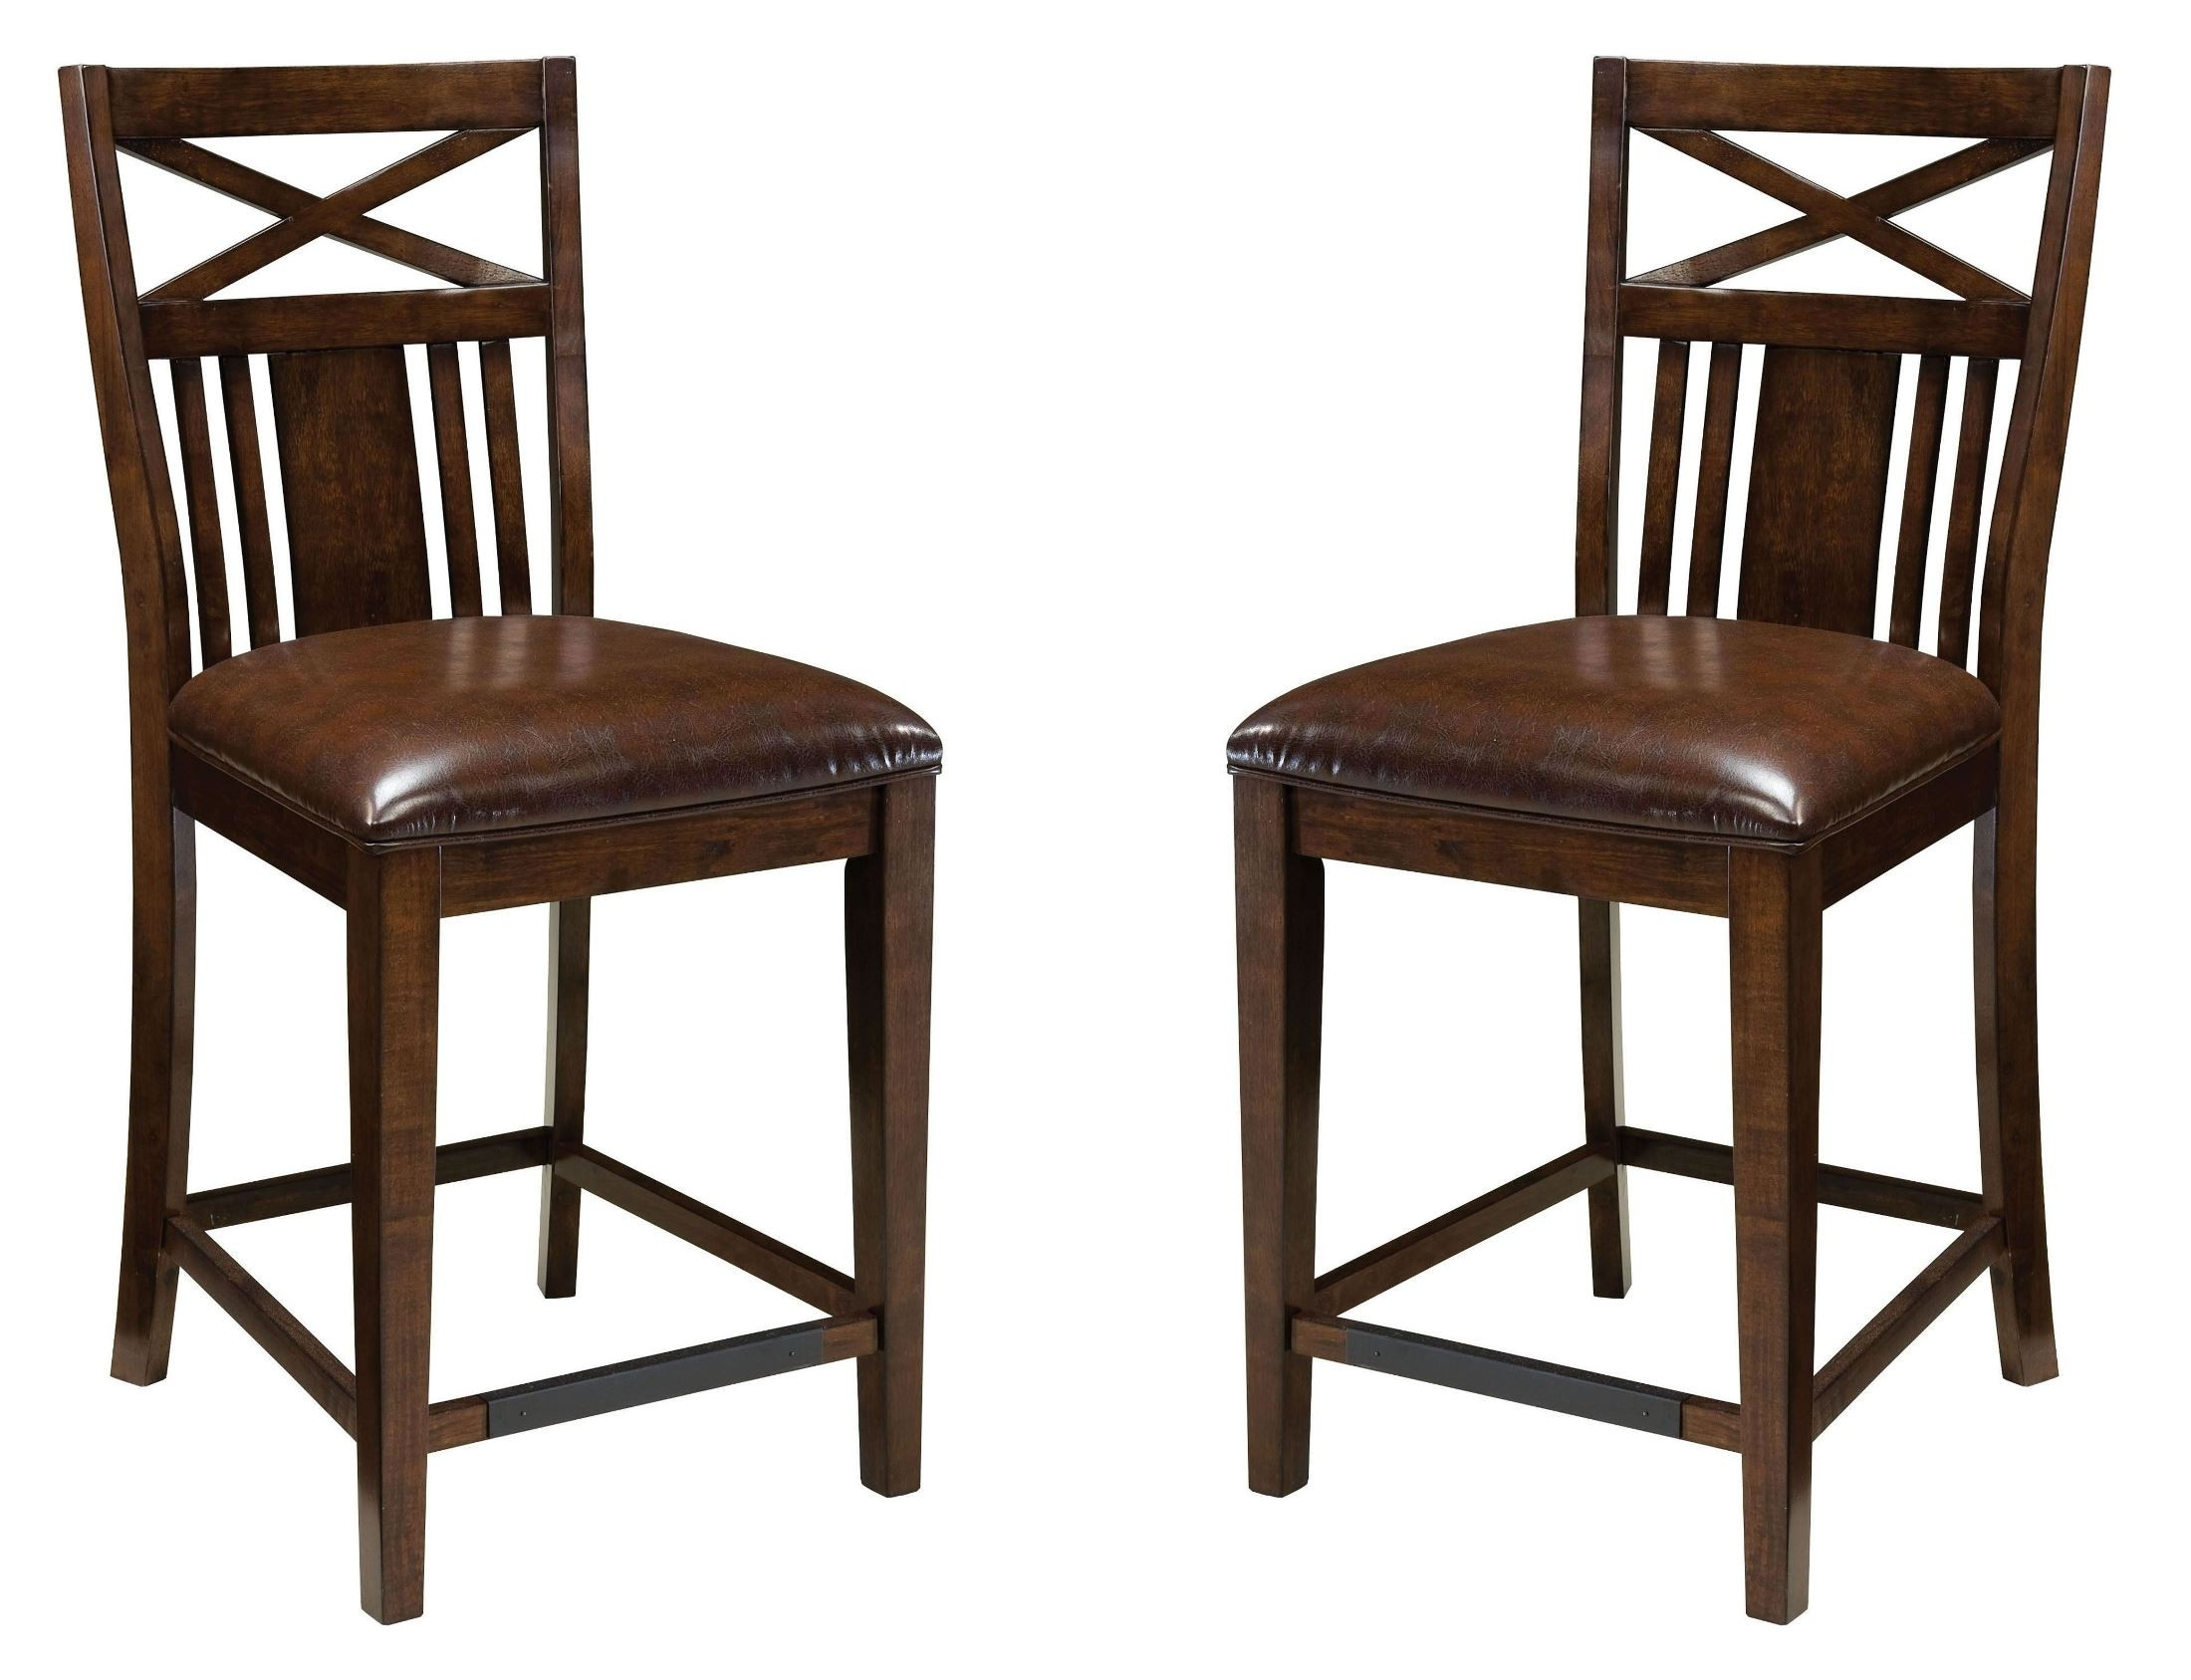 Sonoma warm medium oak round drop leaf counter dining room for Round dining room sets with leaf